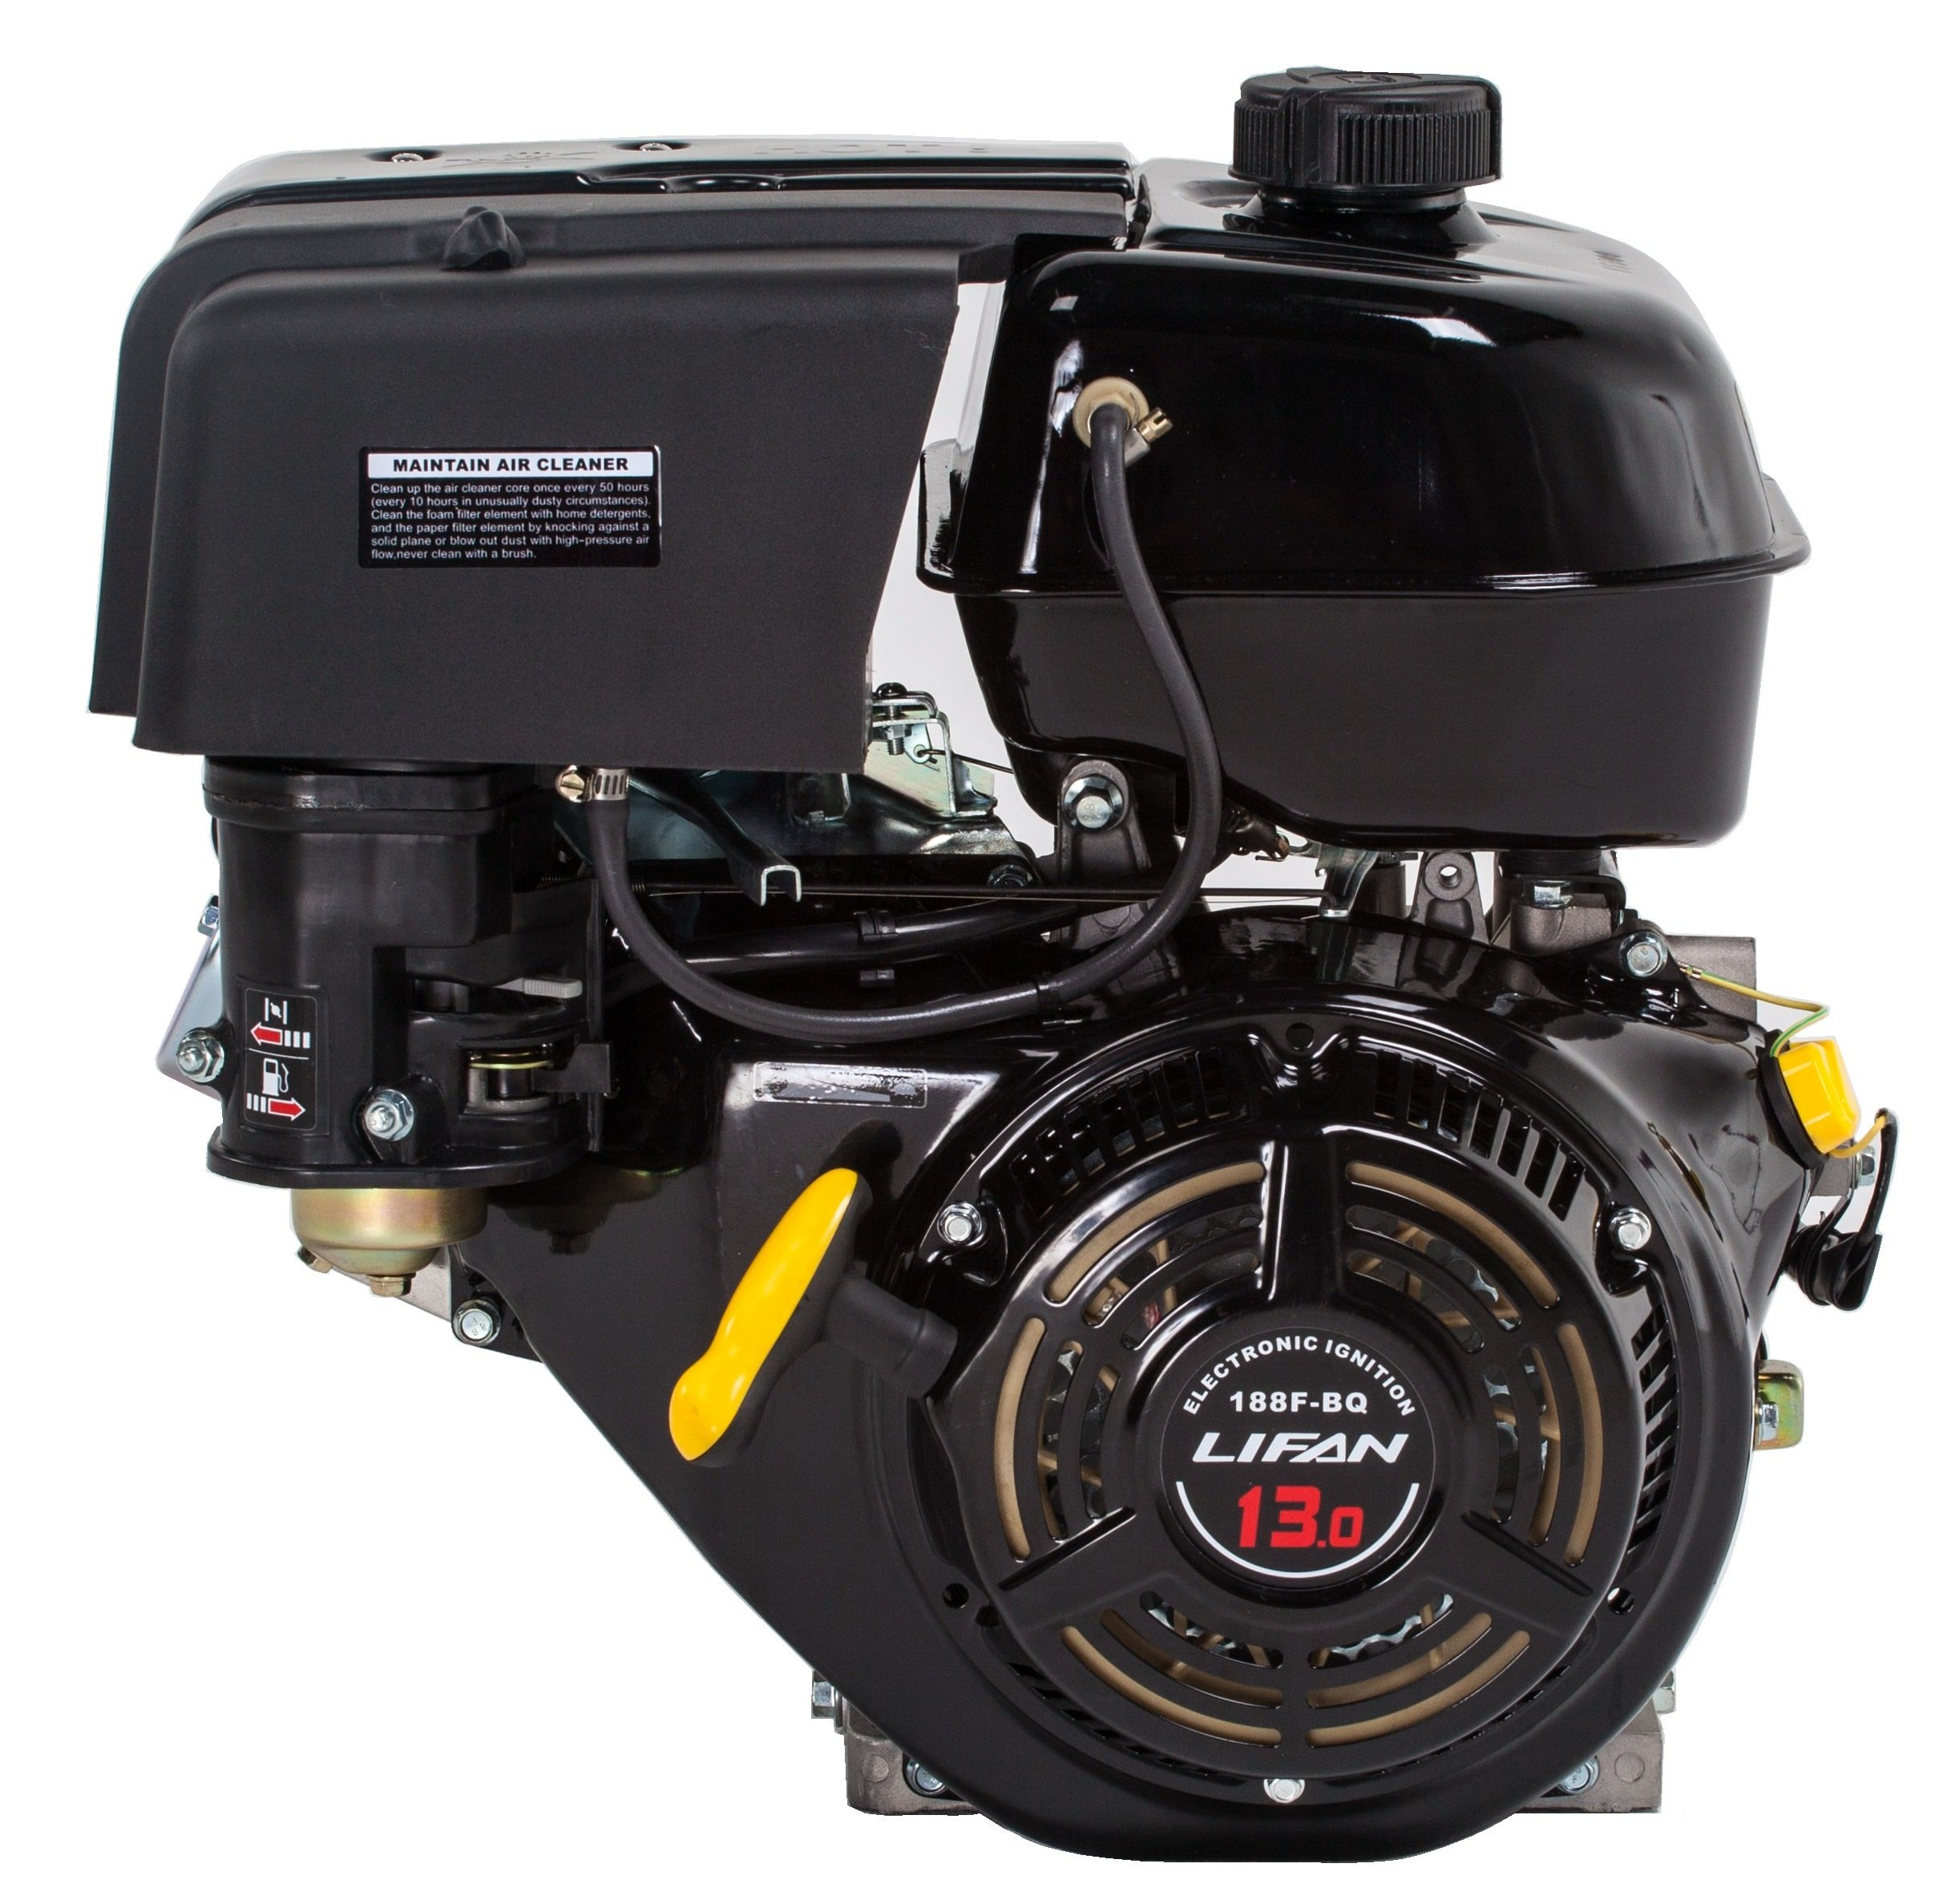 Lifan LF188F-BQ 13 HP 389cc 4-Stroke OHV Industrial Grade Gas Engine with Recoil Start and Universal Mounting Pattern by Lifan